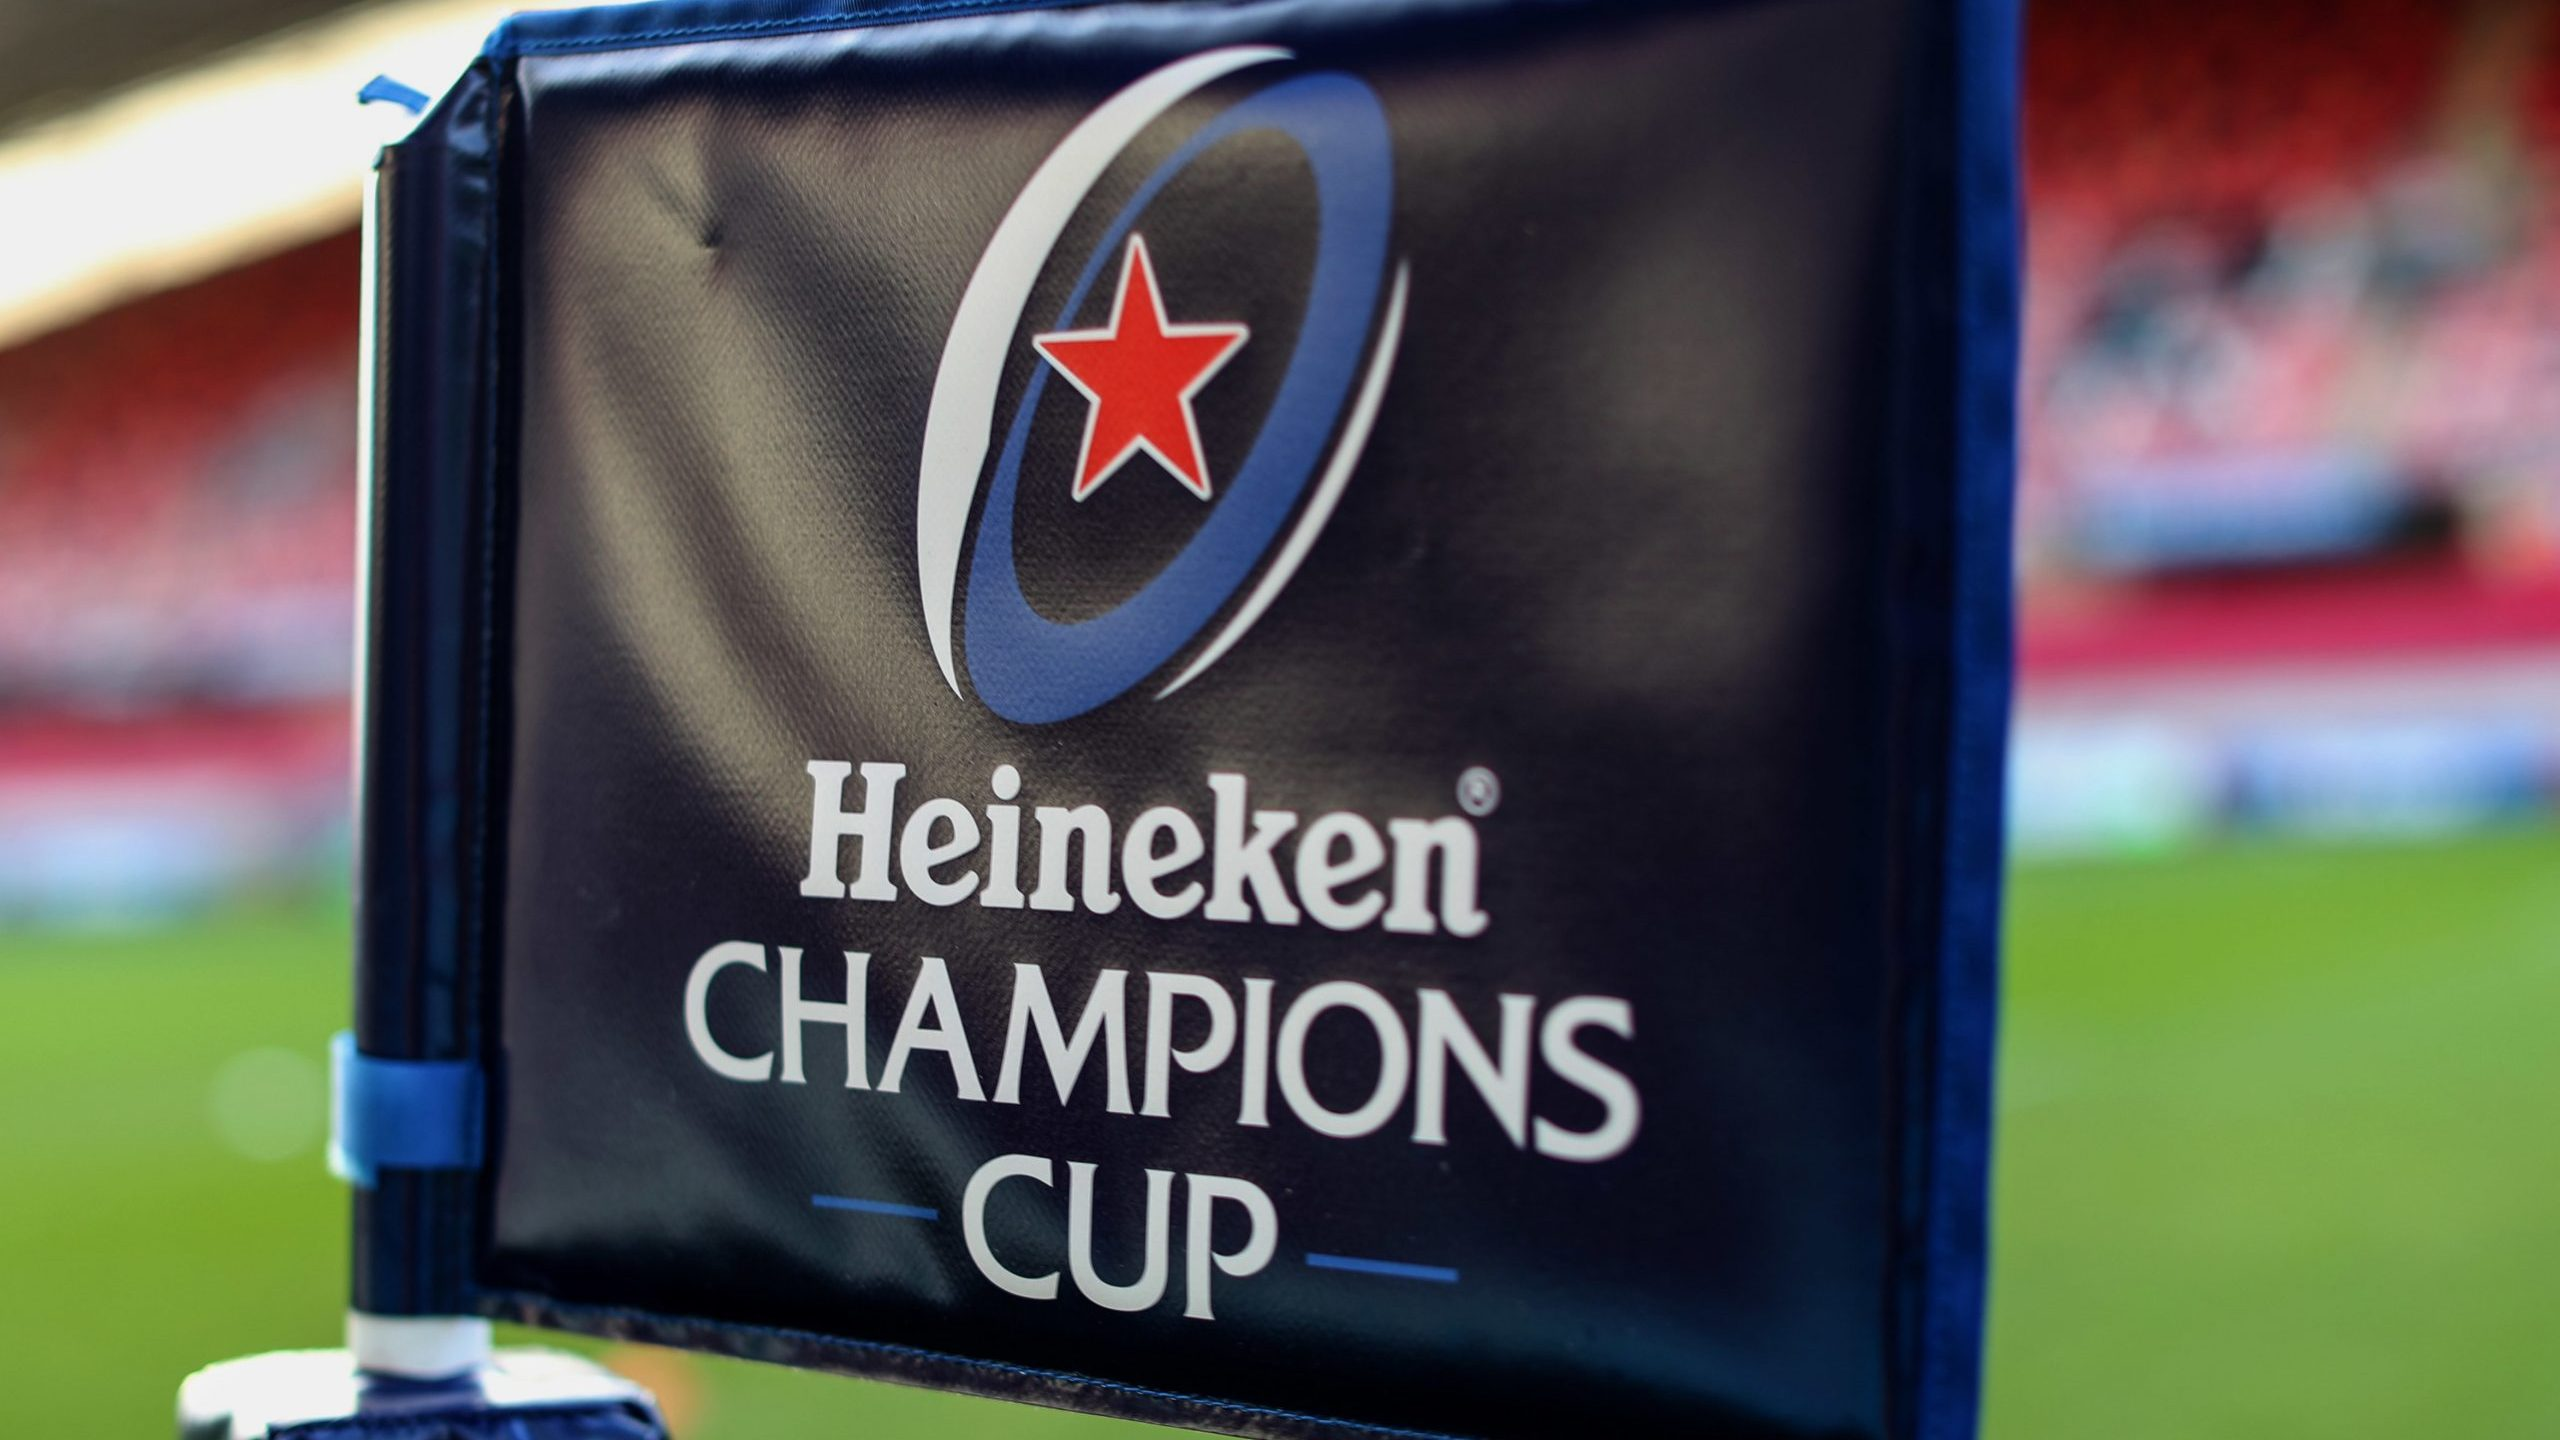 Heineken Champions Cup Round Of 16 Fixture Dates Announced photo